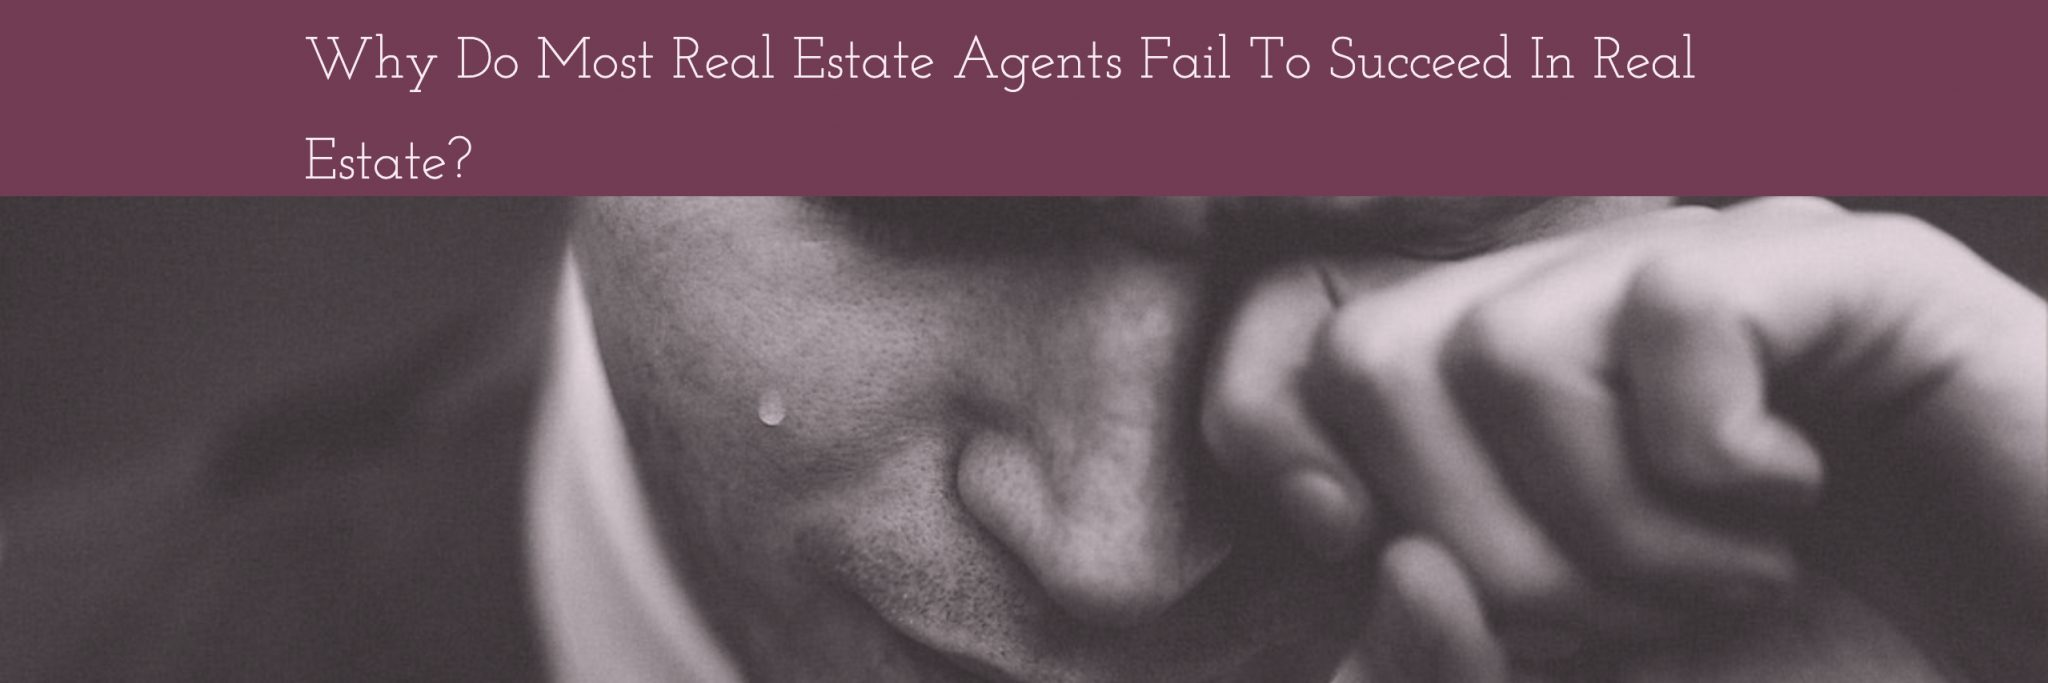 Why Do Most Real Estate Agents Fail To Succeed In Real Estate_